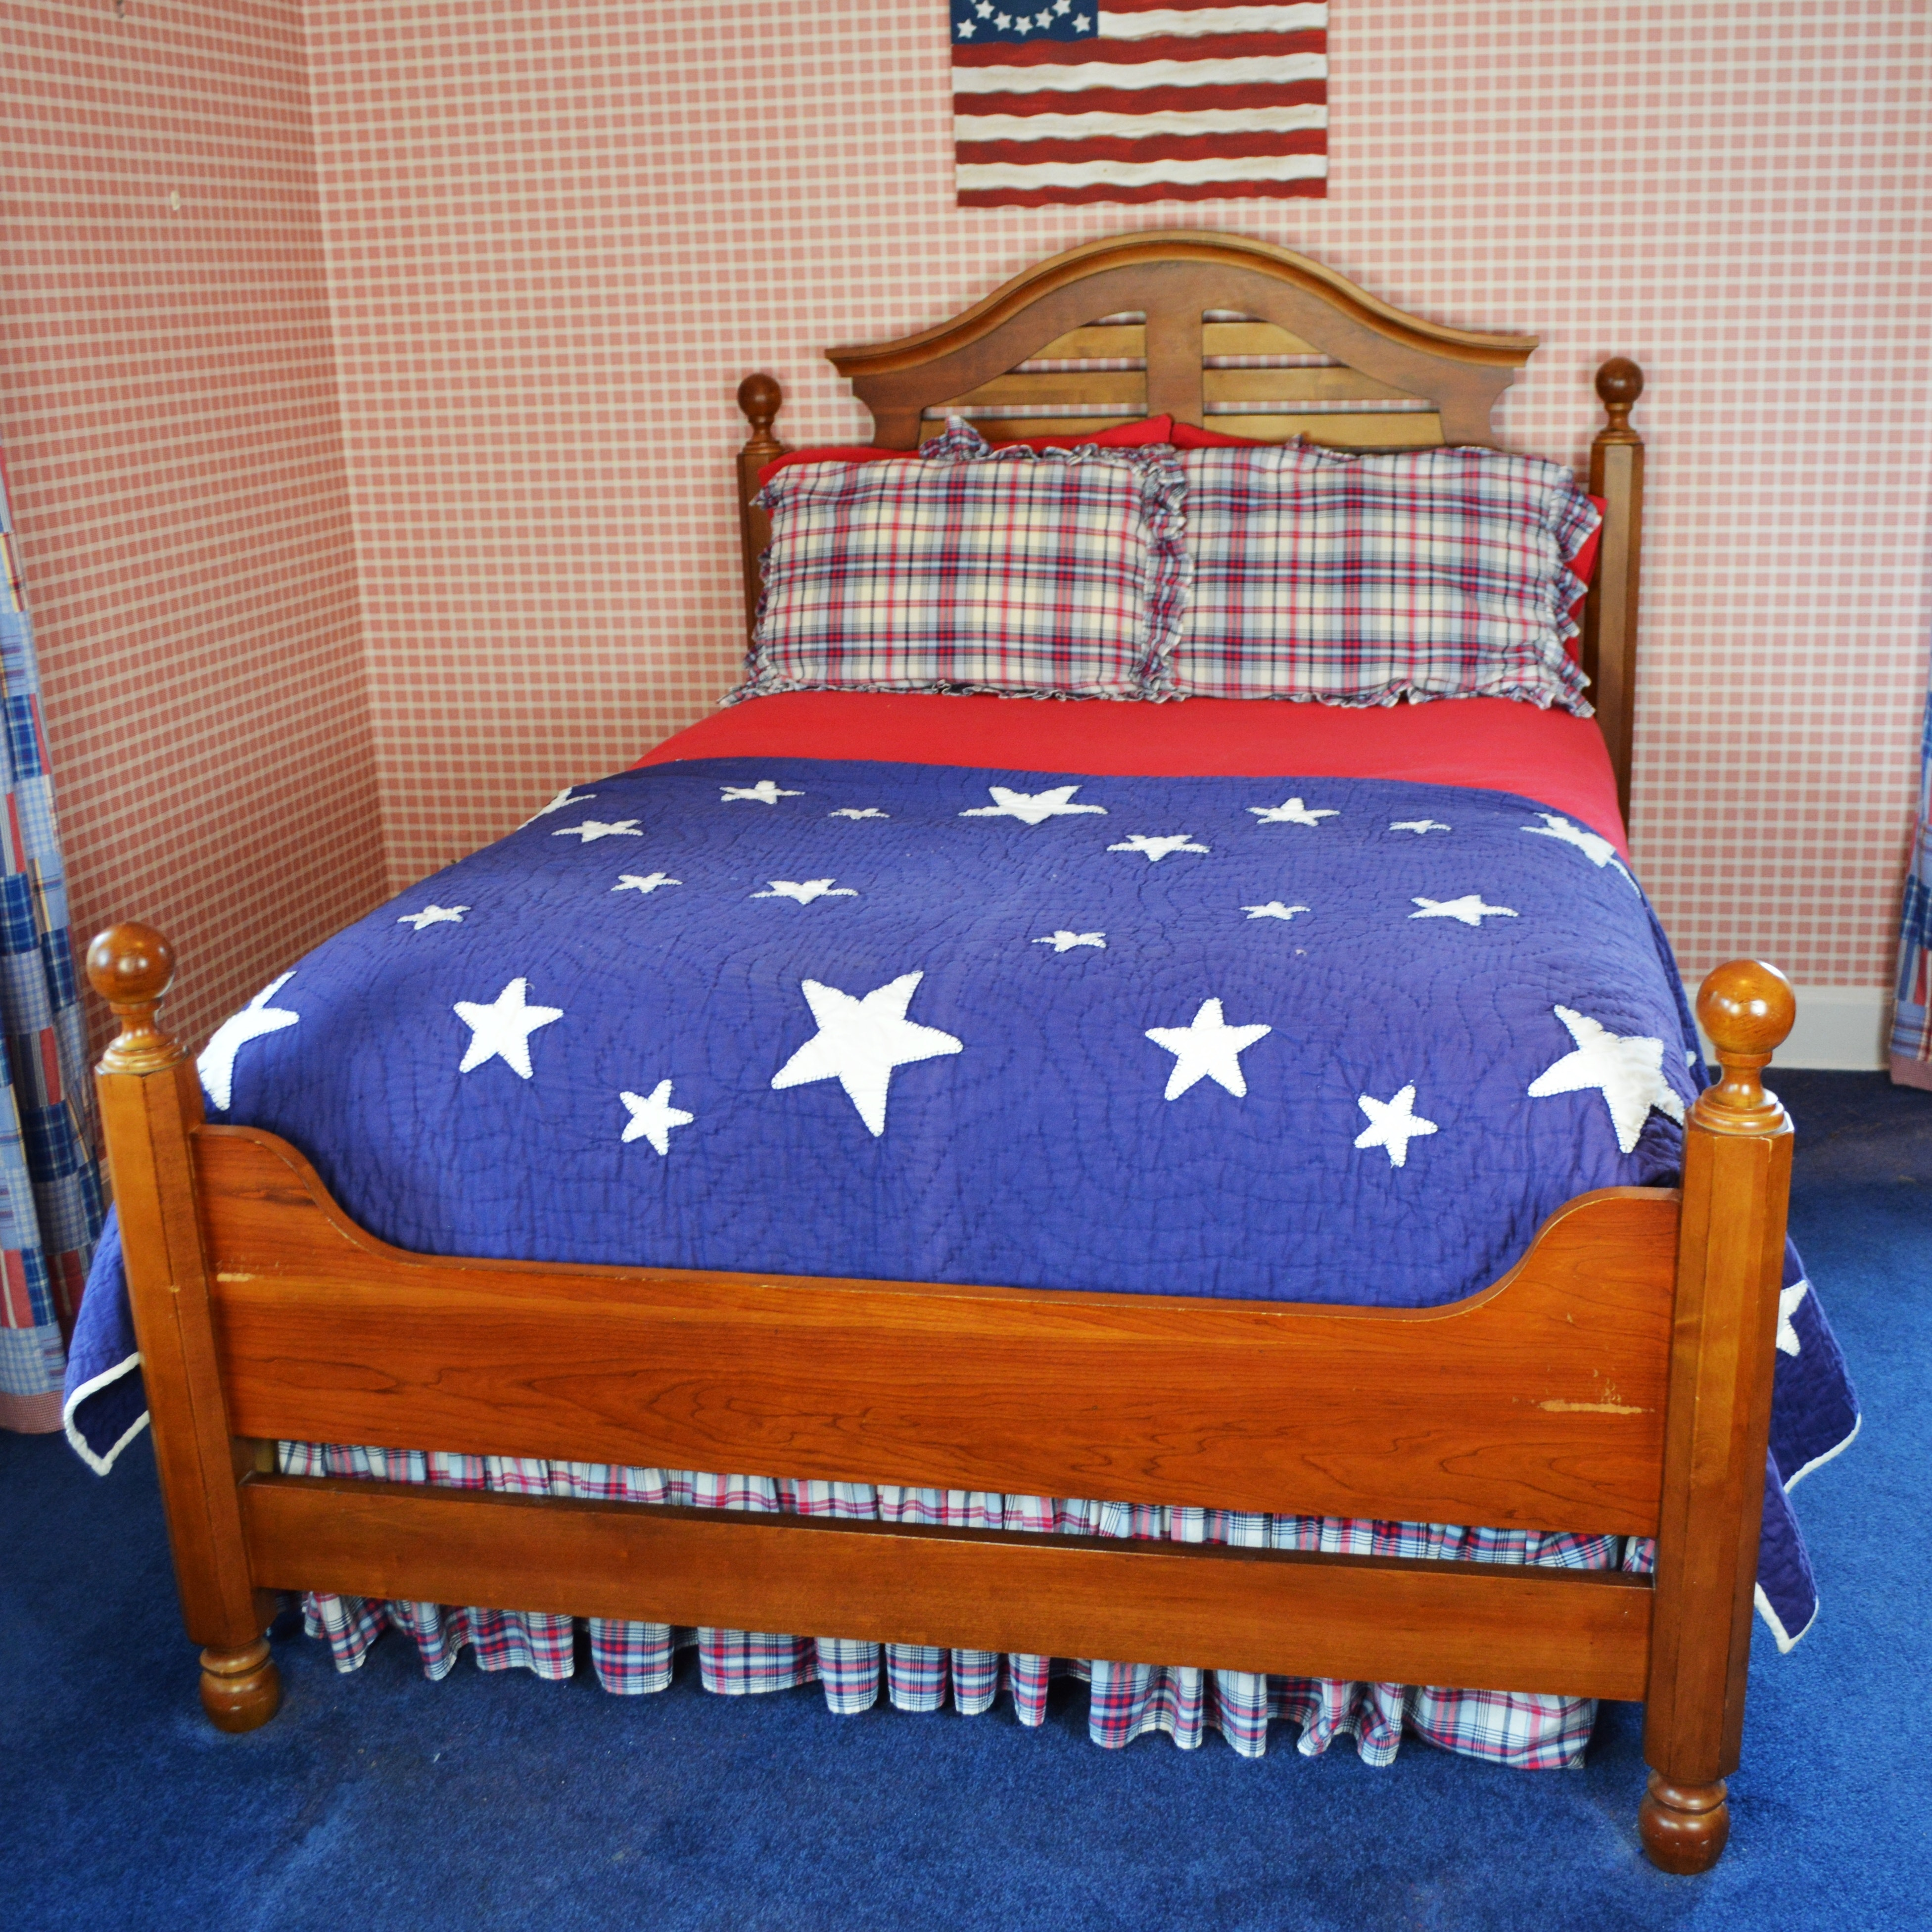 Eddie Bauer Lifestyles Double Bed By Lane And Bedding ...